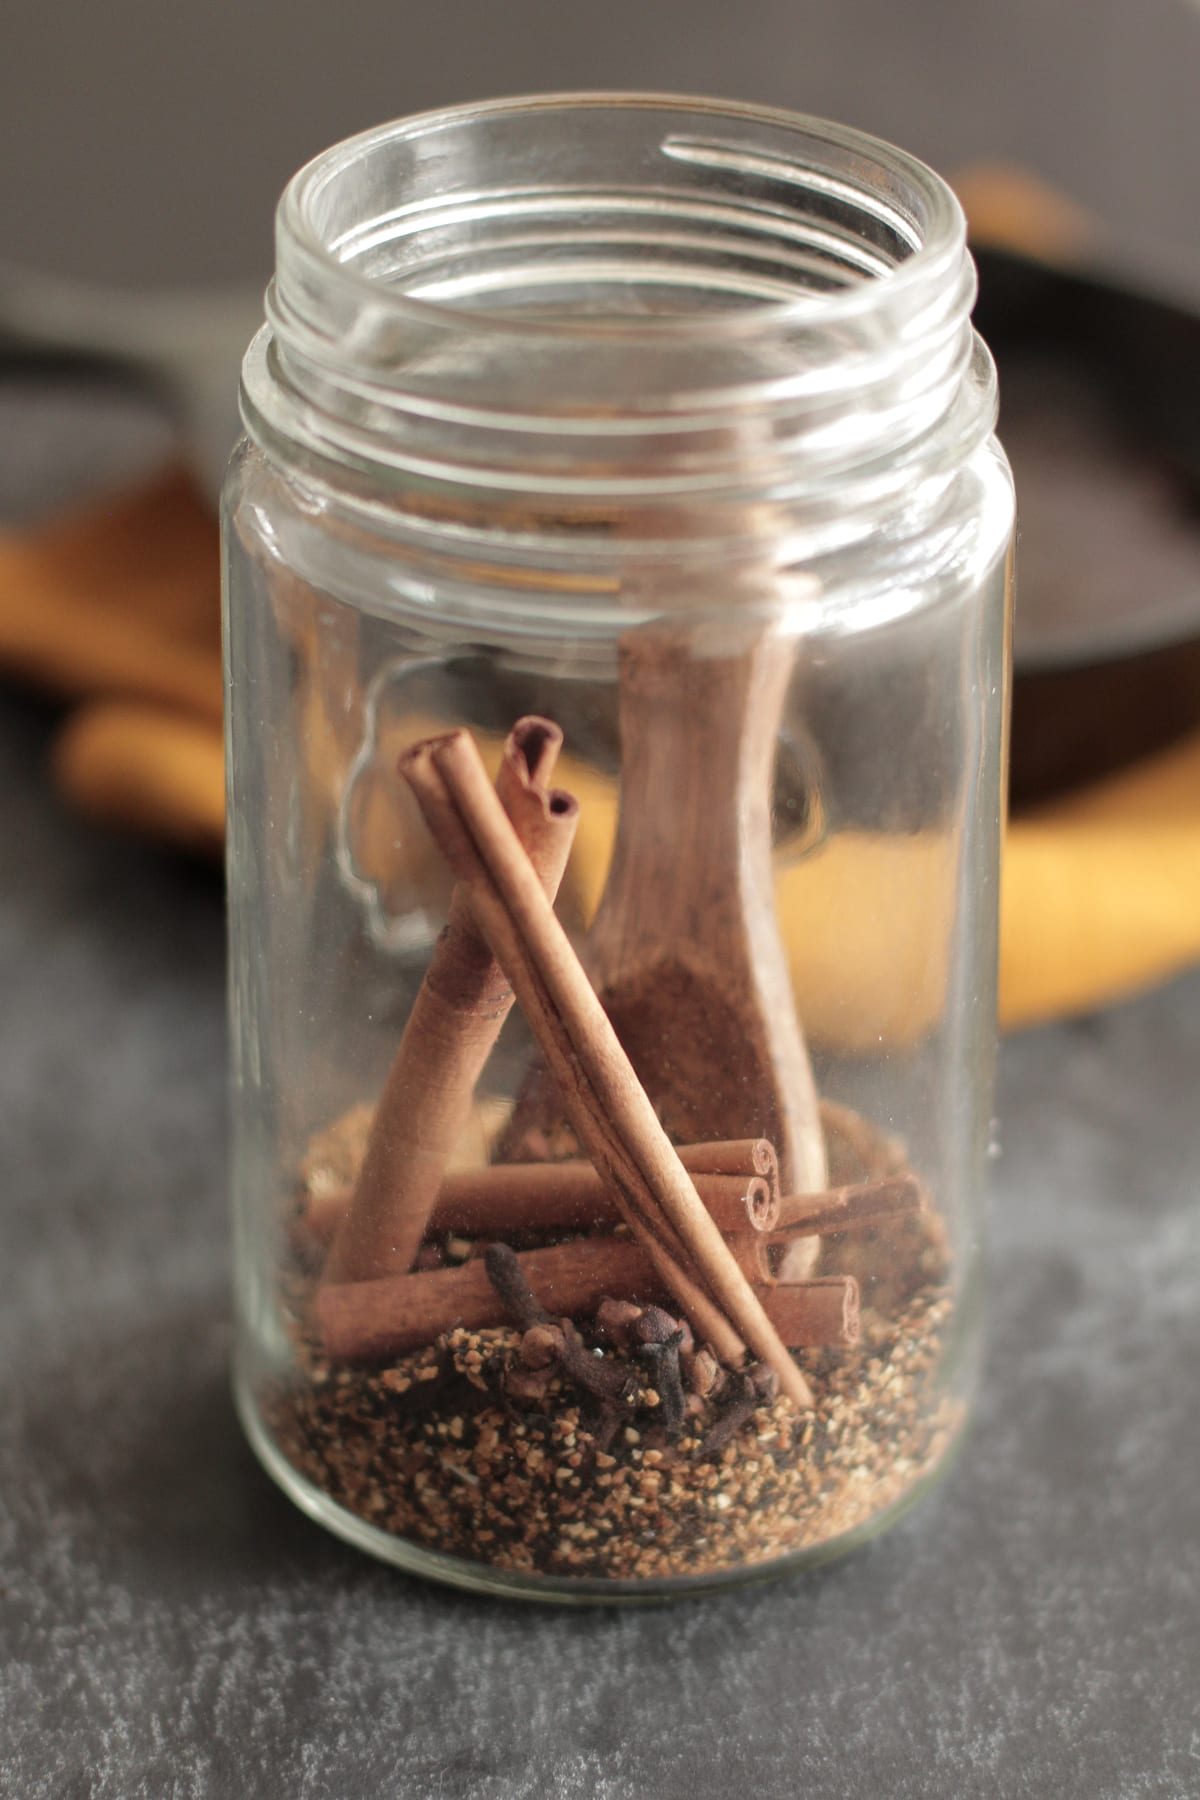 Homemade Cinnamon Air Freshener Is So Easy To Make And Will Make Your House  Smell Wonderful